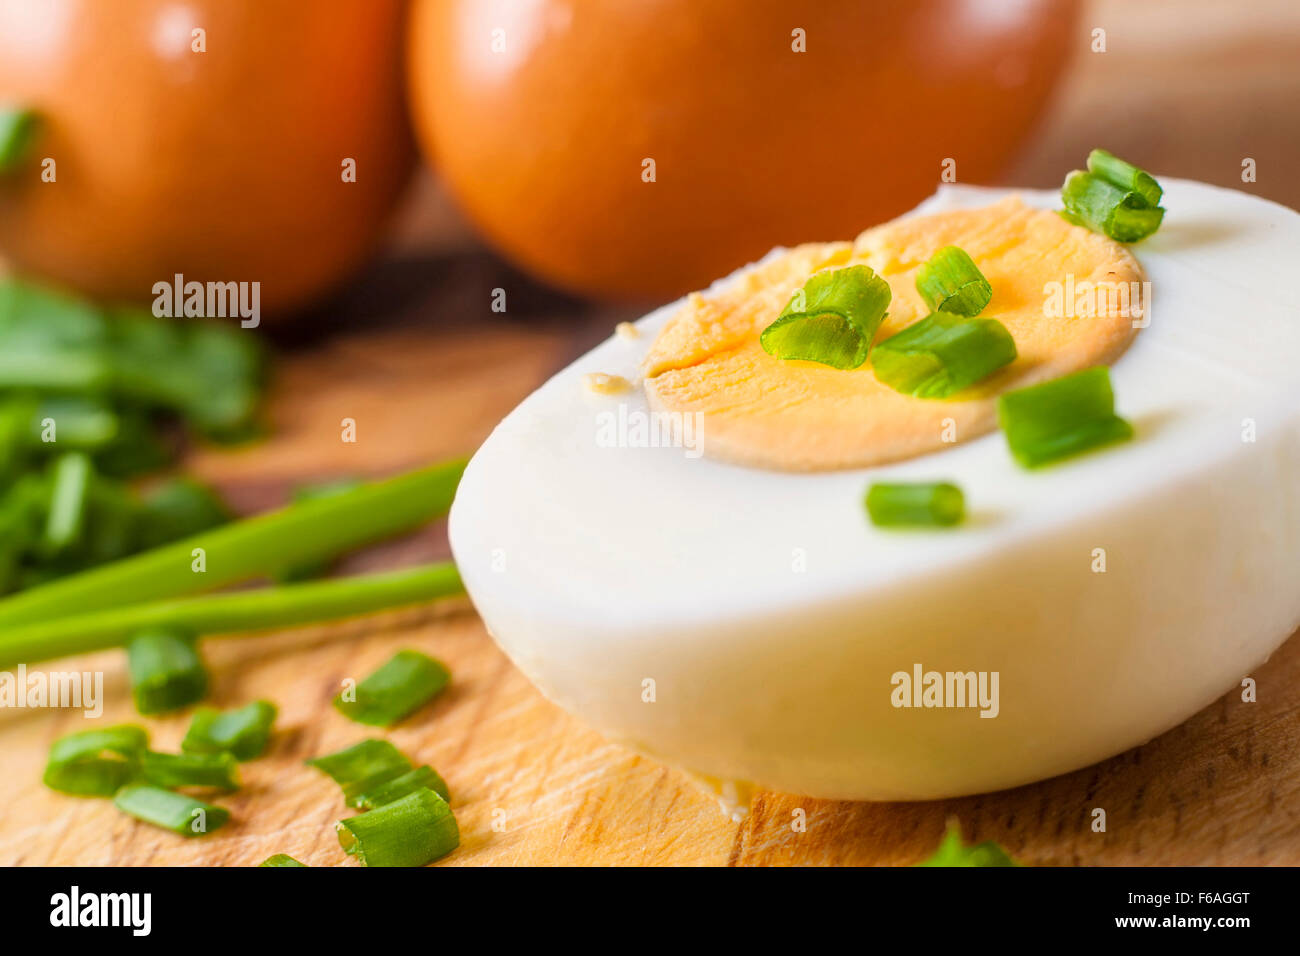 Half of boiled egg  prepared on cutting board with sliced chive and two whole eggs in background Stock Photo